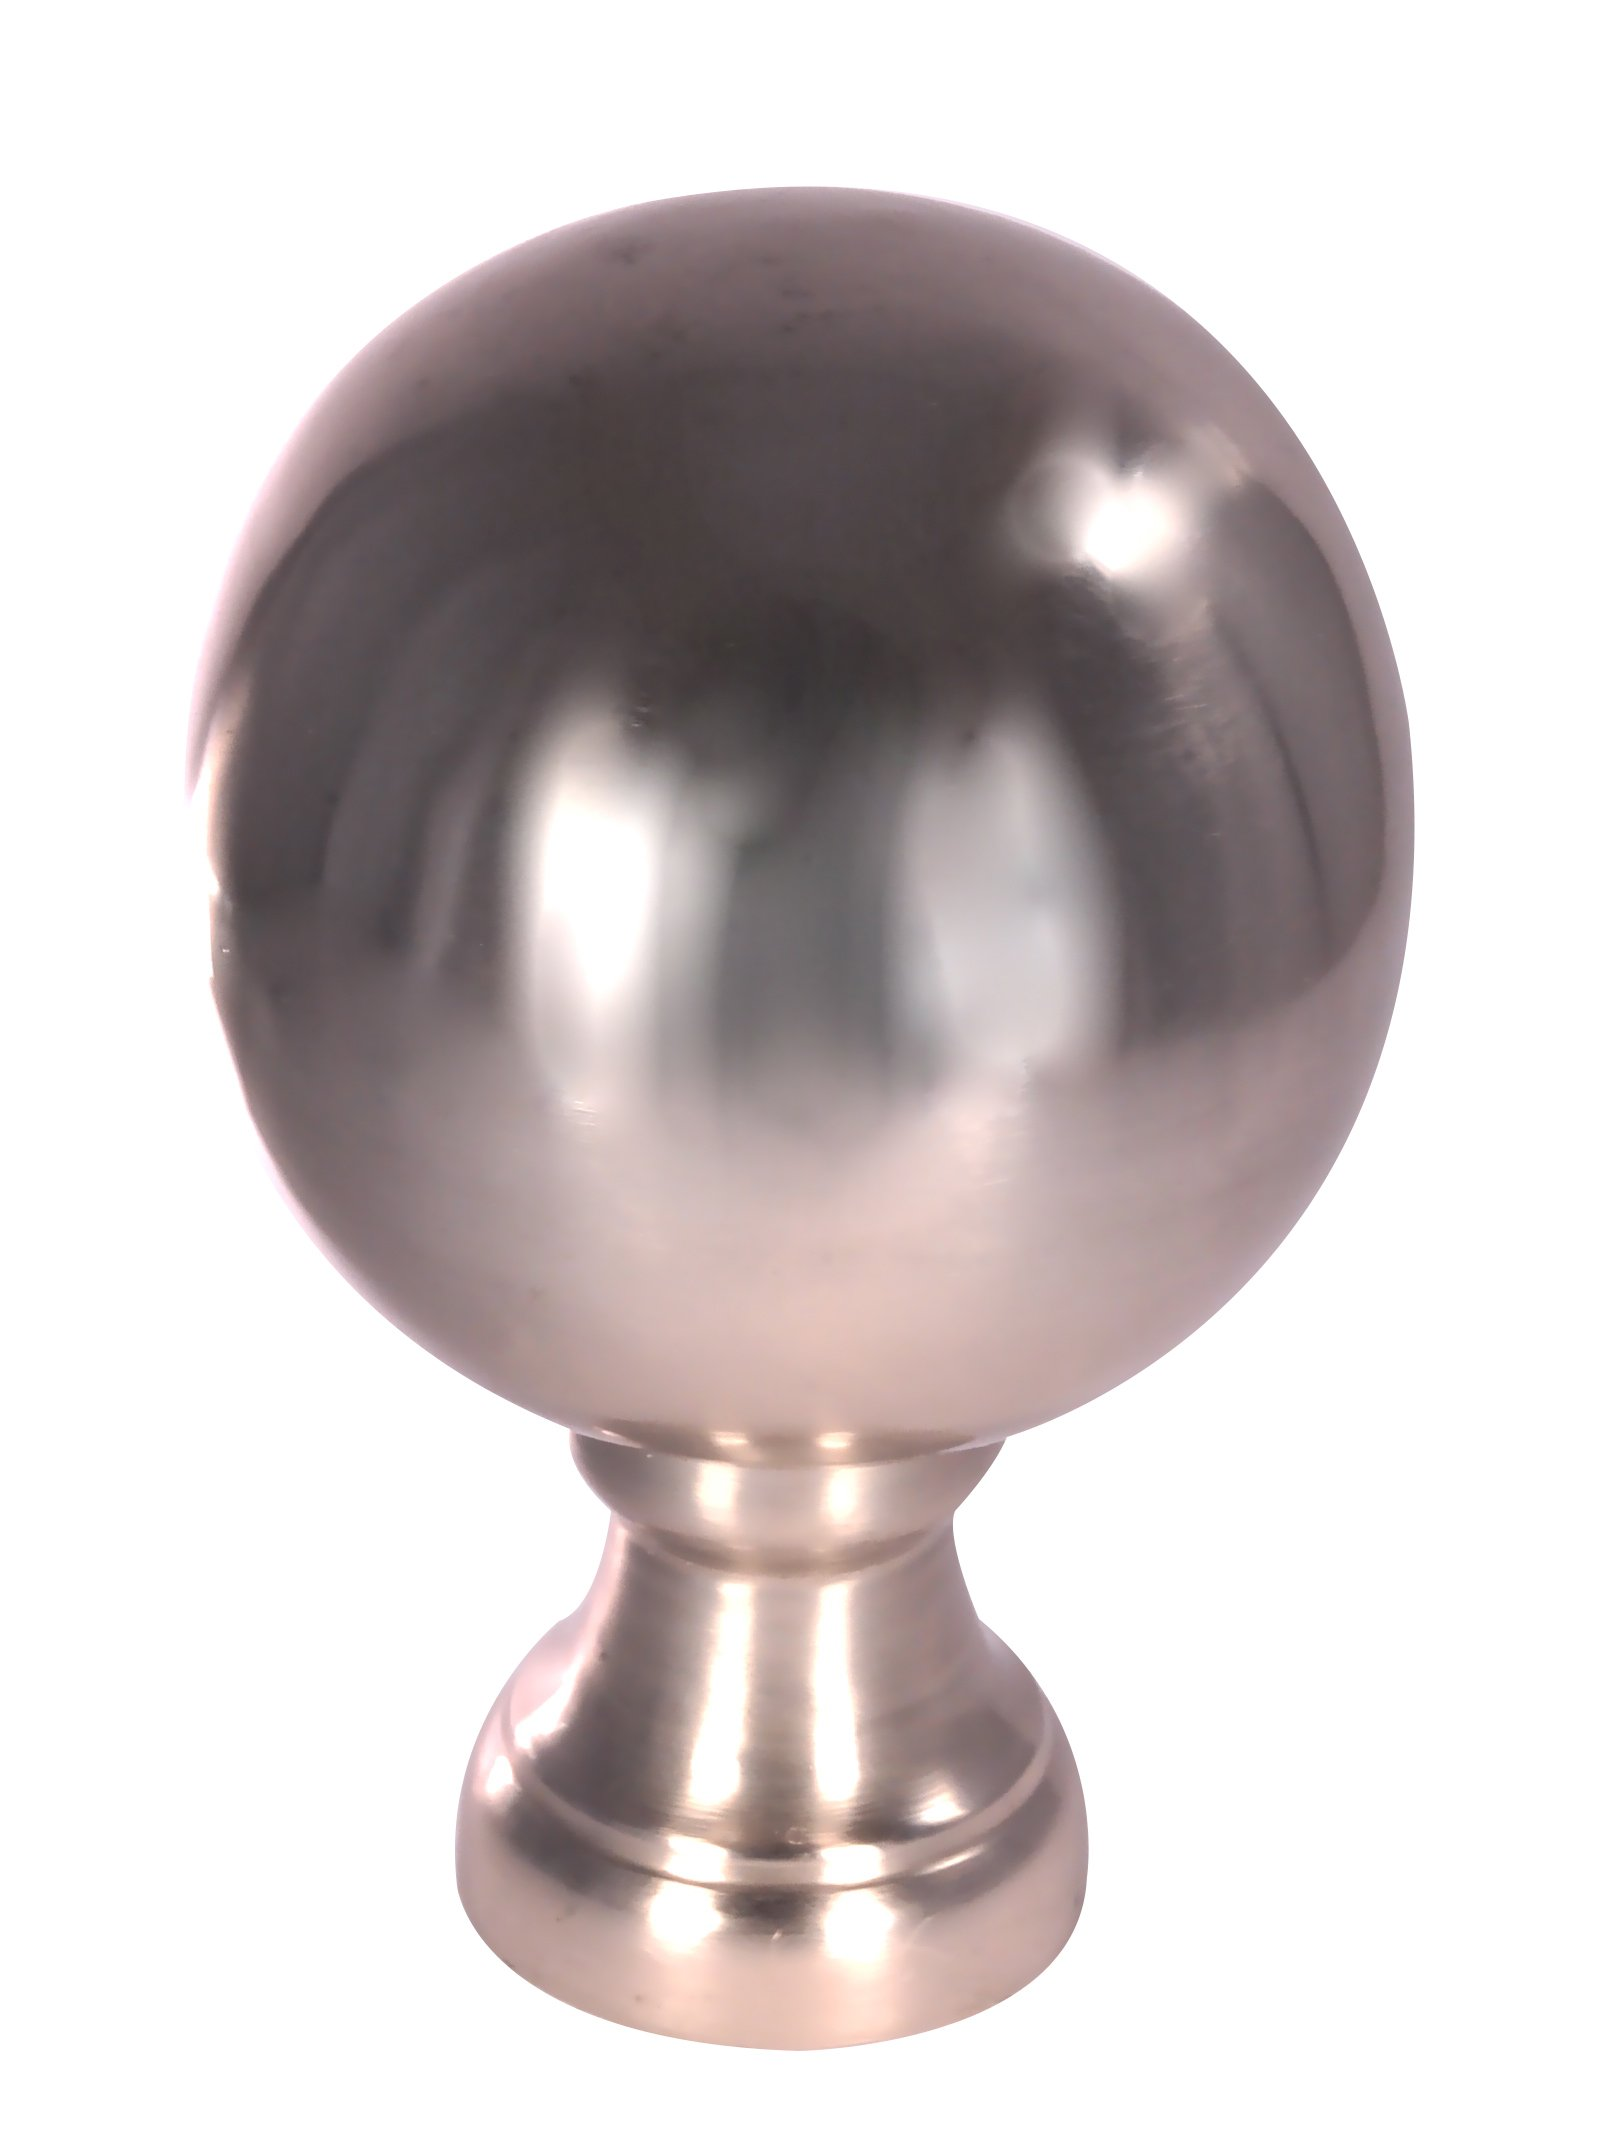 Dalvento Large Londoner Finial- Nickel Brushed